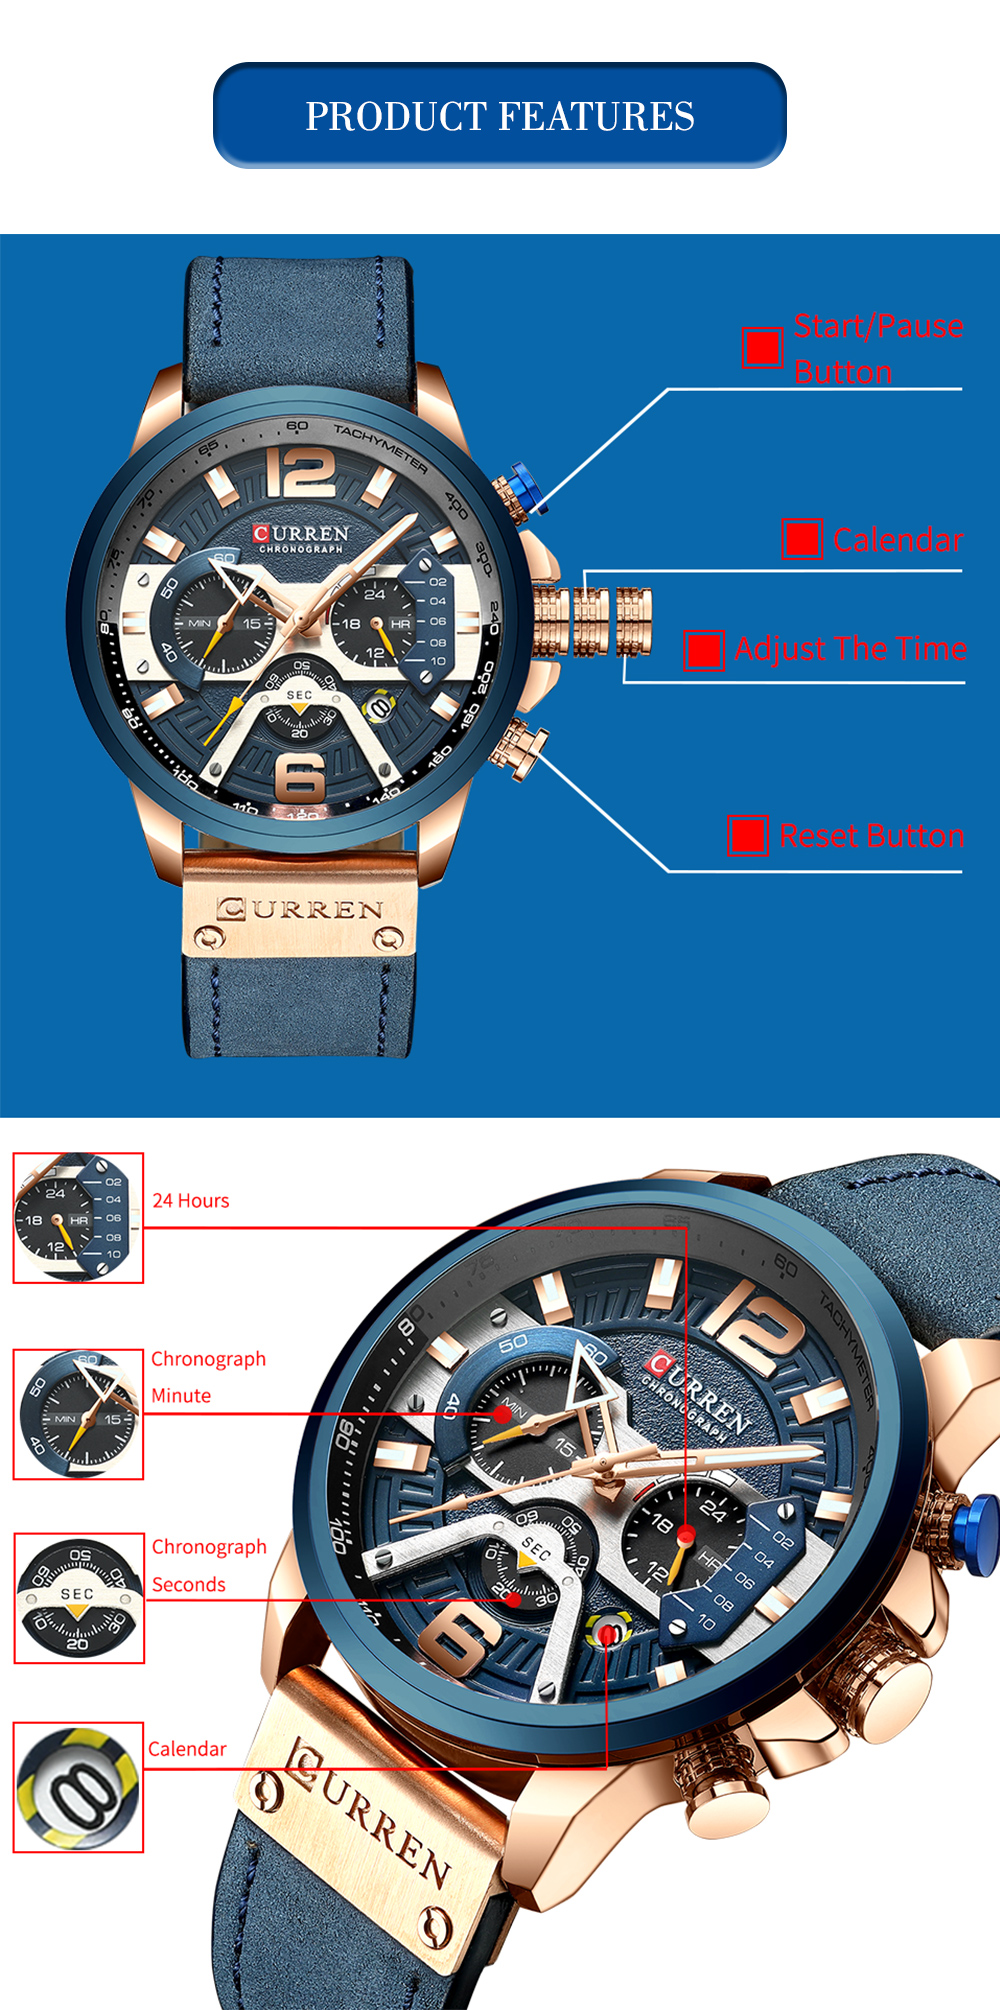 H1adce68536374a9987f240e82db5faf19 CURREN Watch Men Business Watches Orologio Uomo Leather band Wristwatch Leather Quartz Watch Zegarek Meski Reloj Hombre man gift